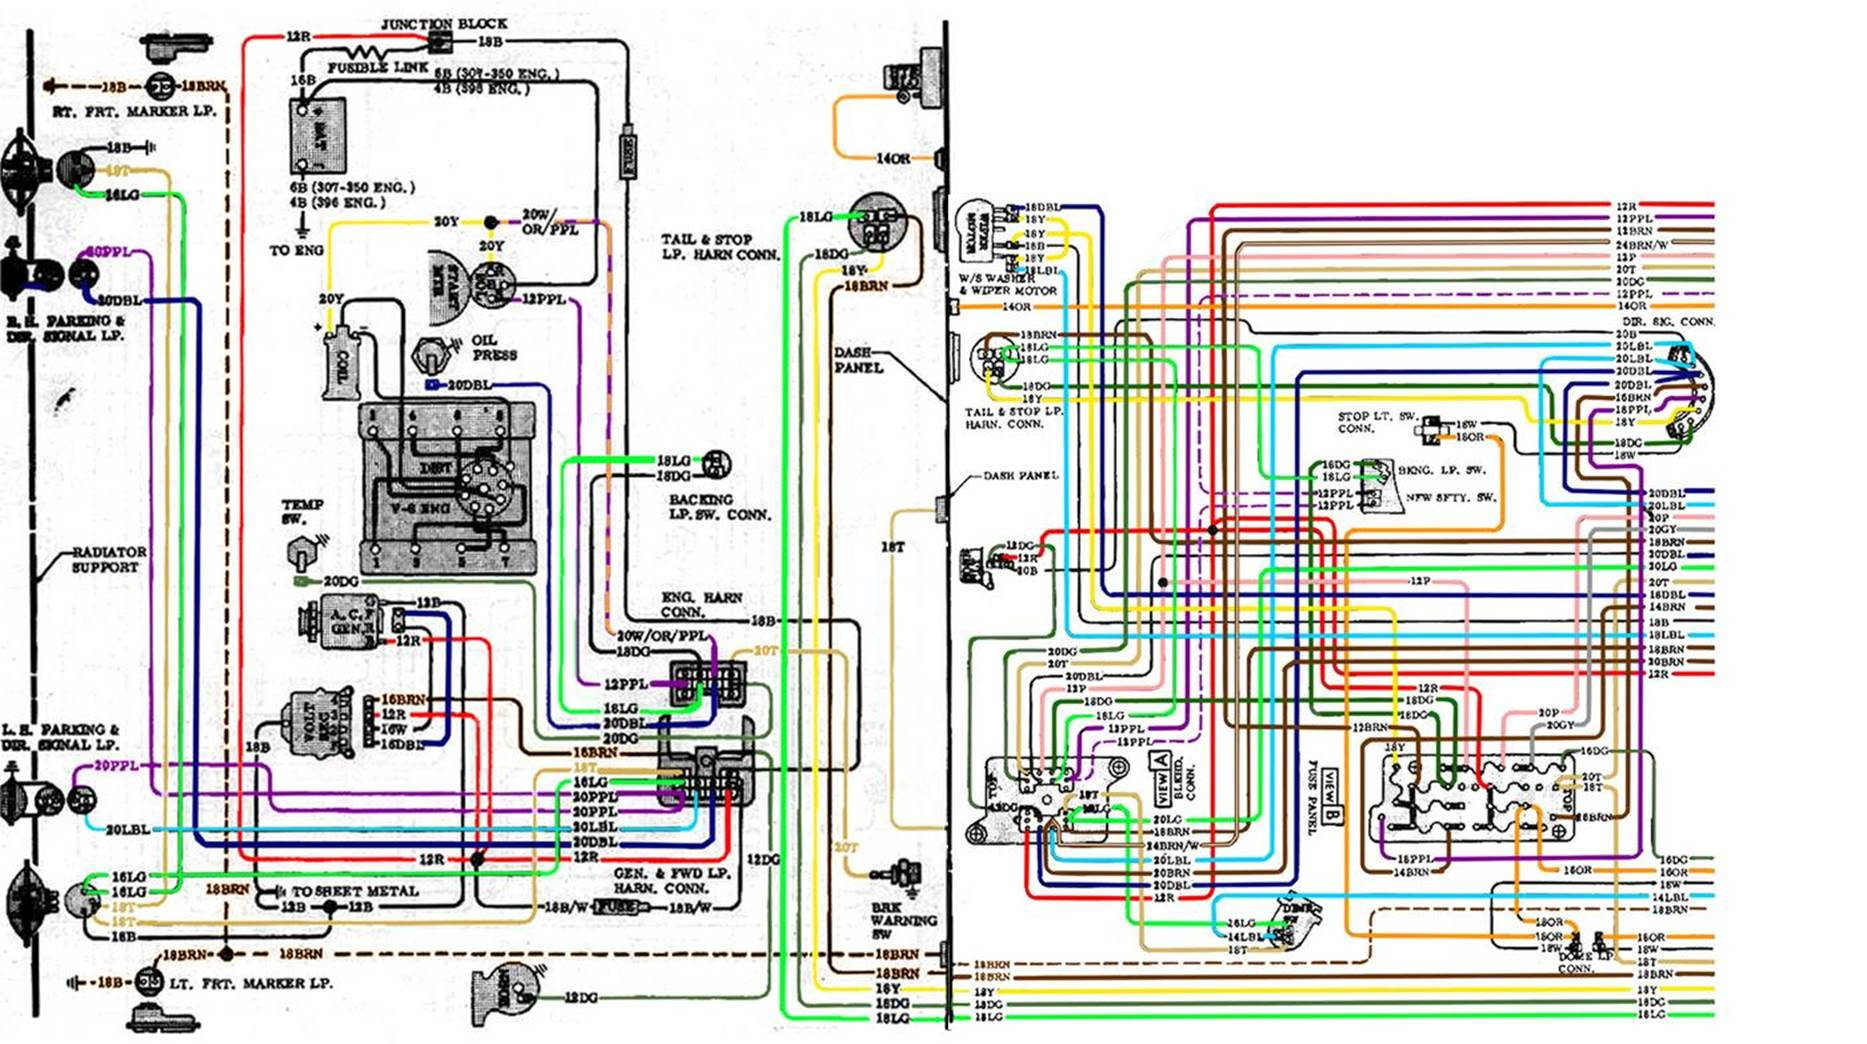 image002 67 72 chevy wiring diagram chevrolet wiring diagram at webbmarketing.co